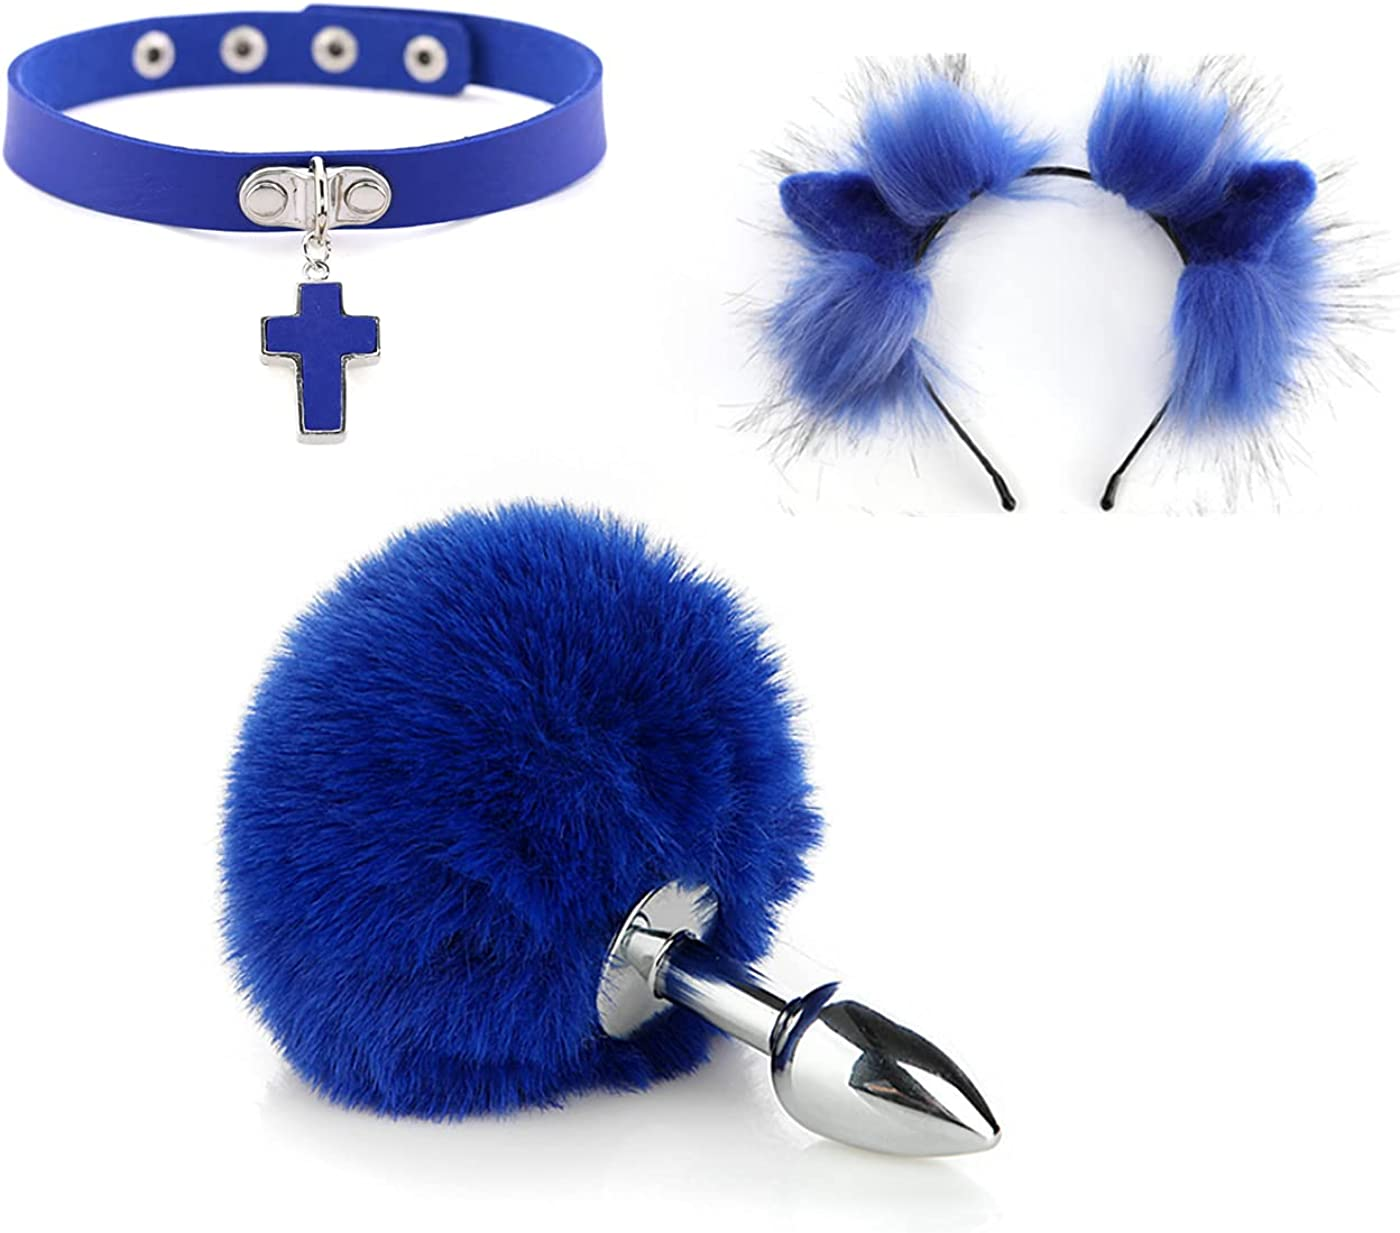 Blue Fluffy Tail ???? Anal plug Headband with Outlet sale feature NEW before selling Plush Cat Ears Pun